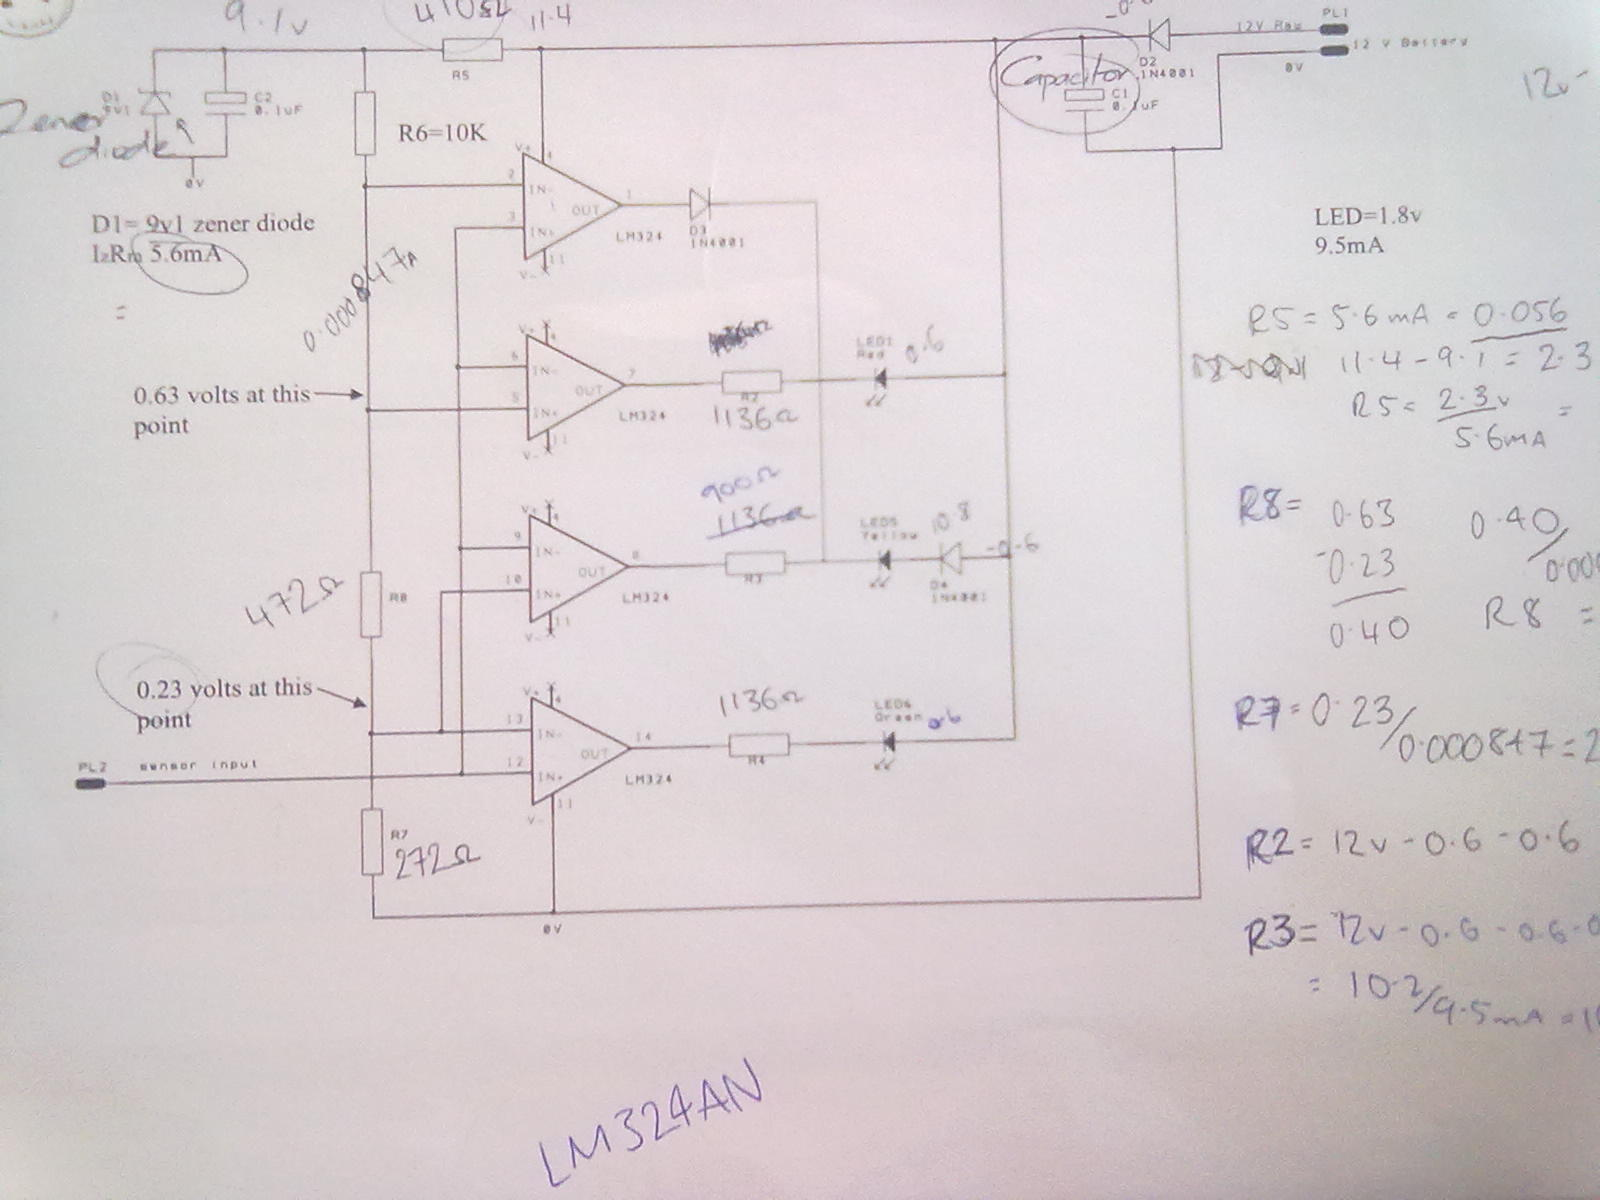 Lily Green Ttec 4847 Oxygen Sensor Schematic Figuring Out The Values Of Resistors Wasnt To Hard Once We Were Taught How Do It Starting With R5 Which Was One First So Because